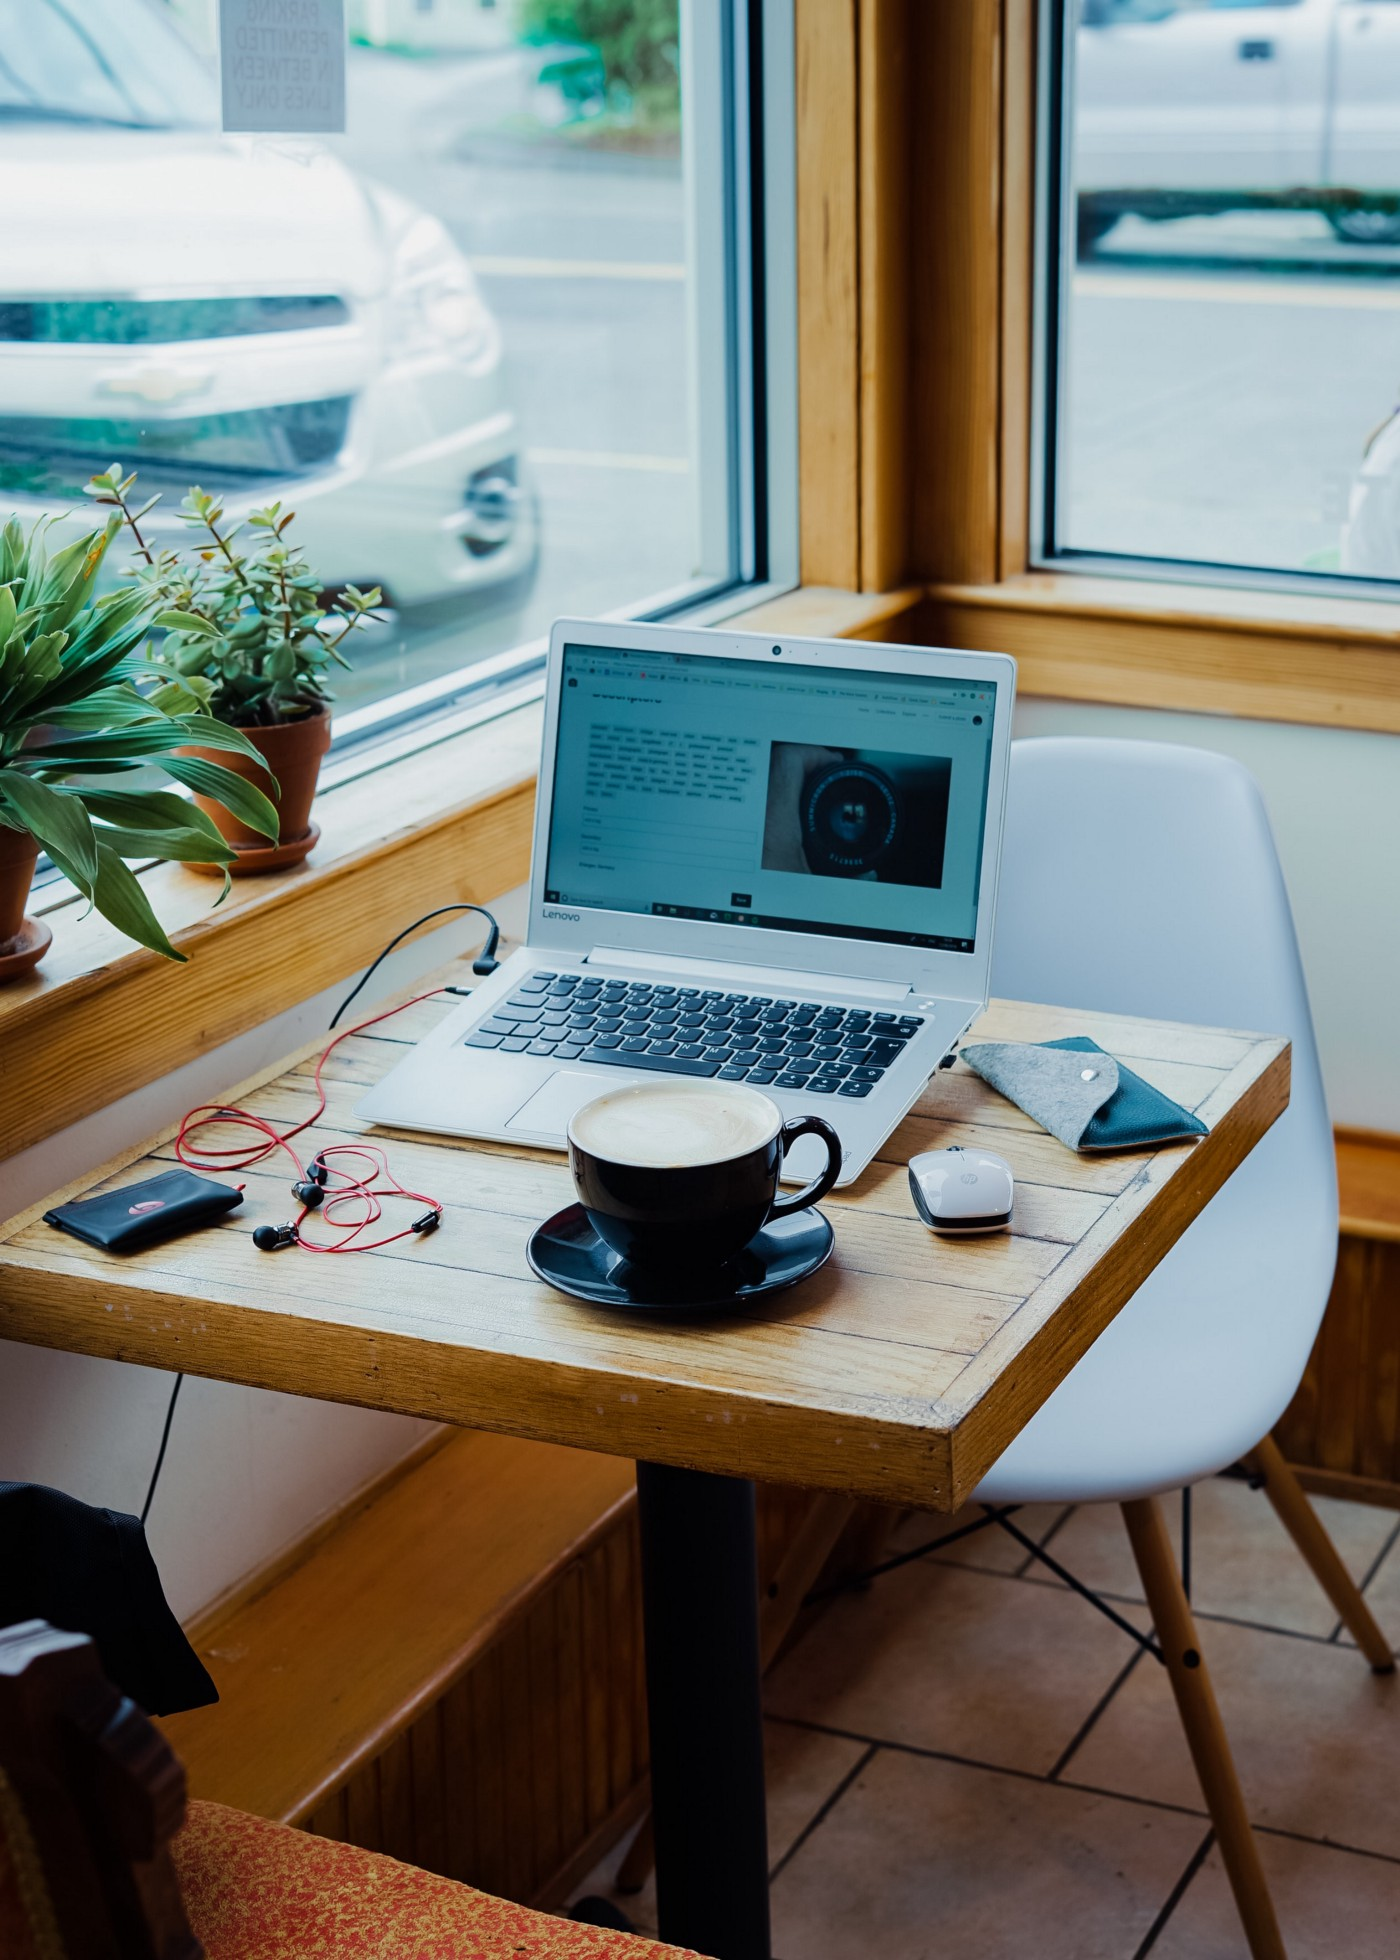 A laptop and coffee mug sitting on a table in a cafe window, the freelance life